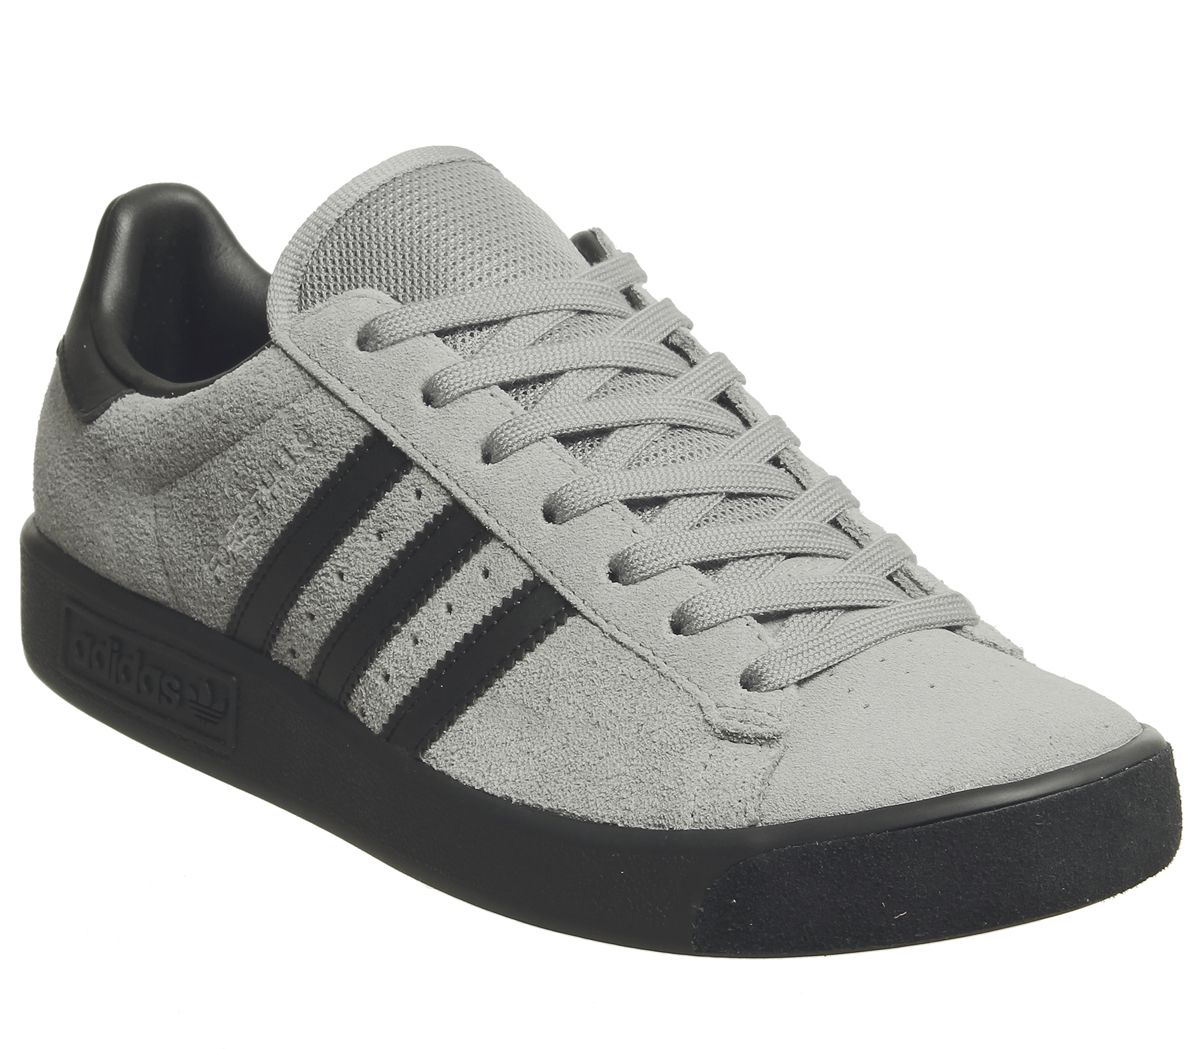 55fbd492ca Sentinel Mens Adidas Forest Hills Trainers Grey Three Core Black Exclusive  Trainers Shoes